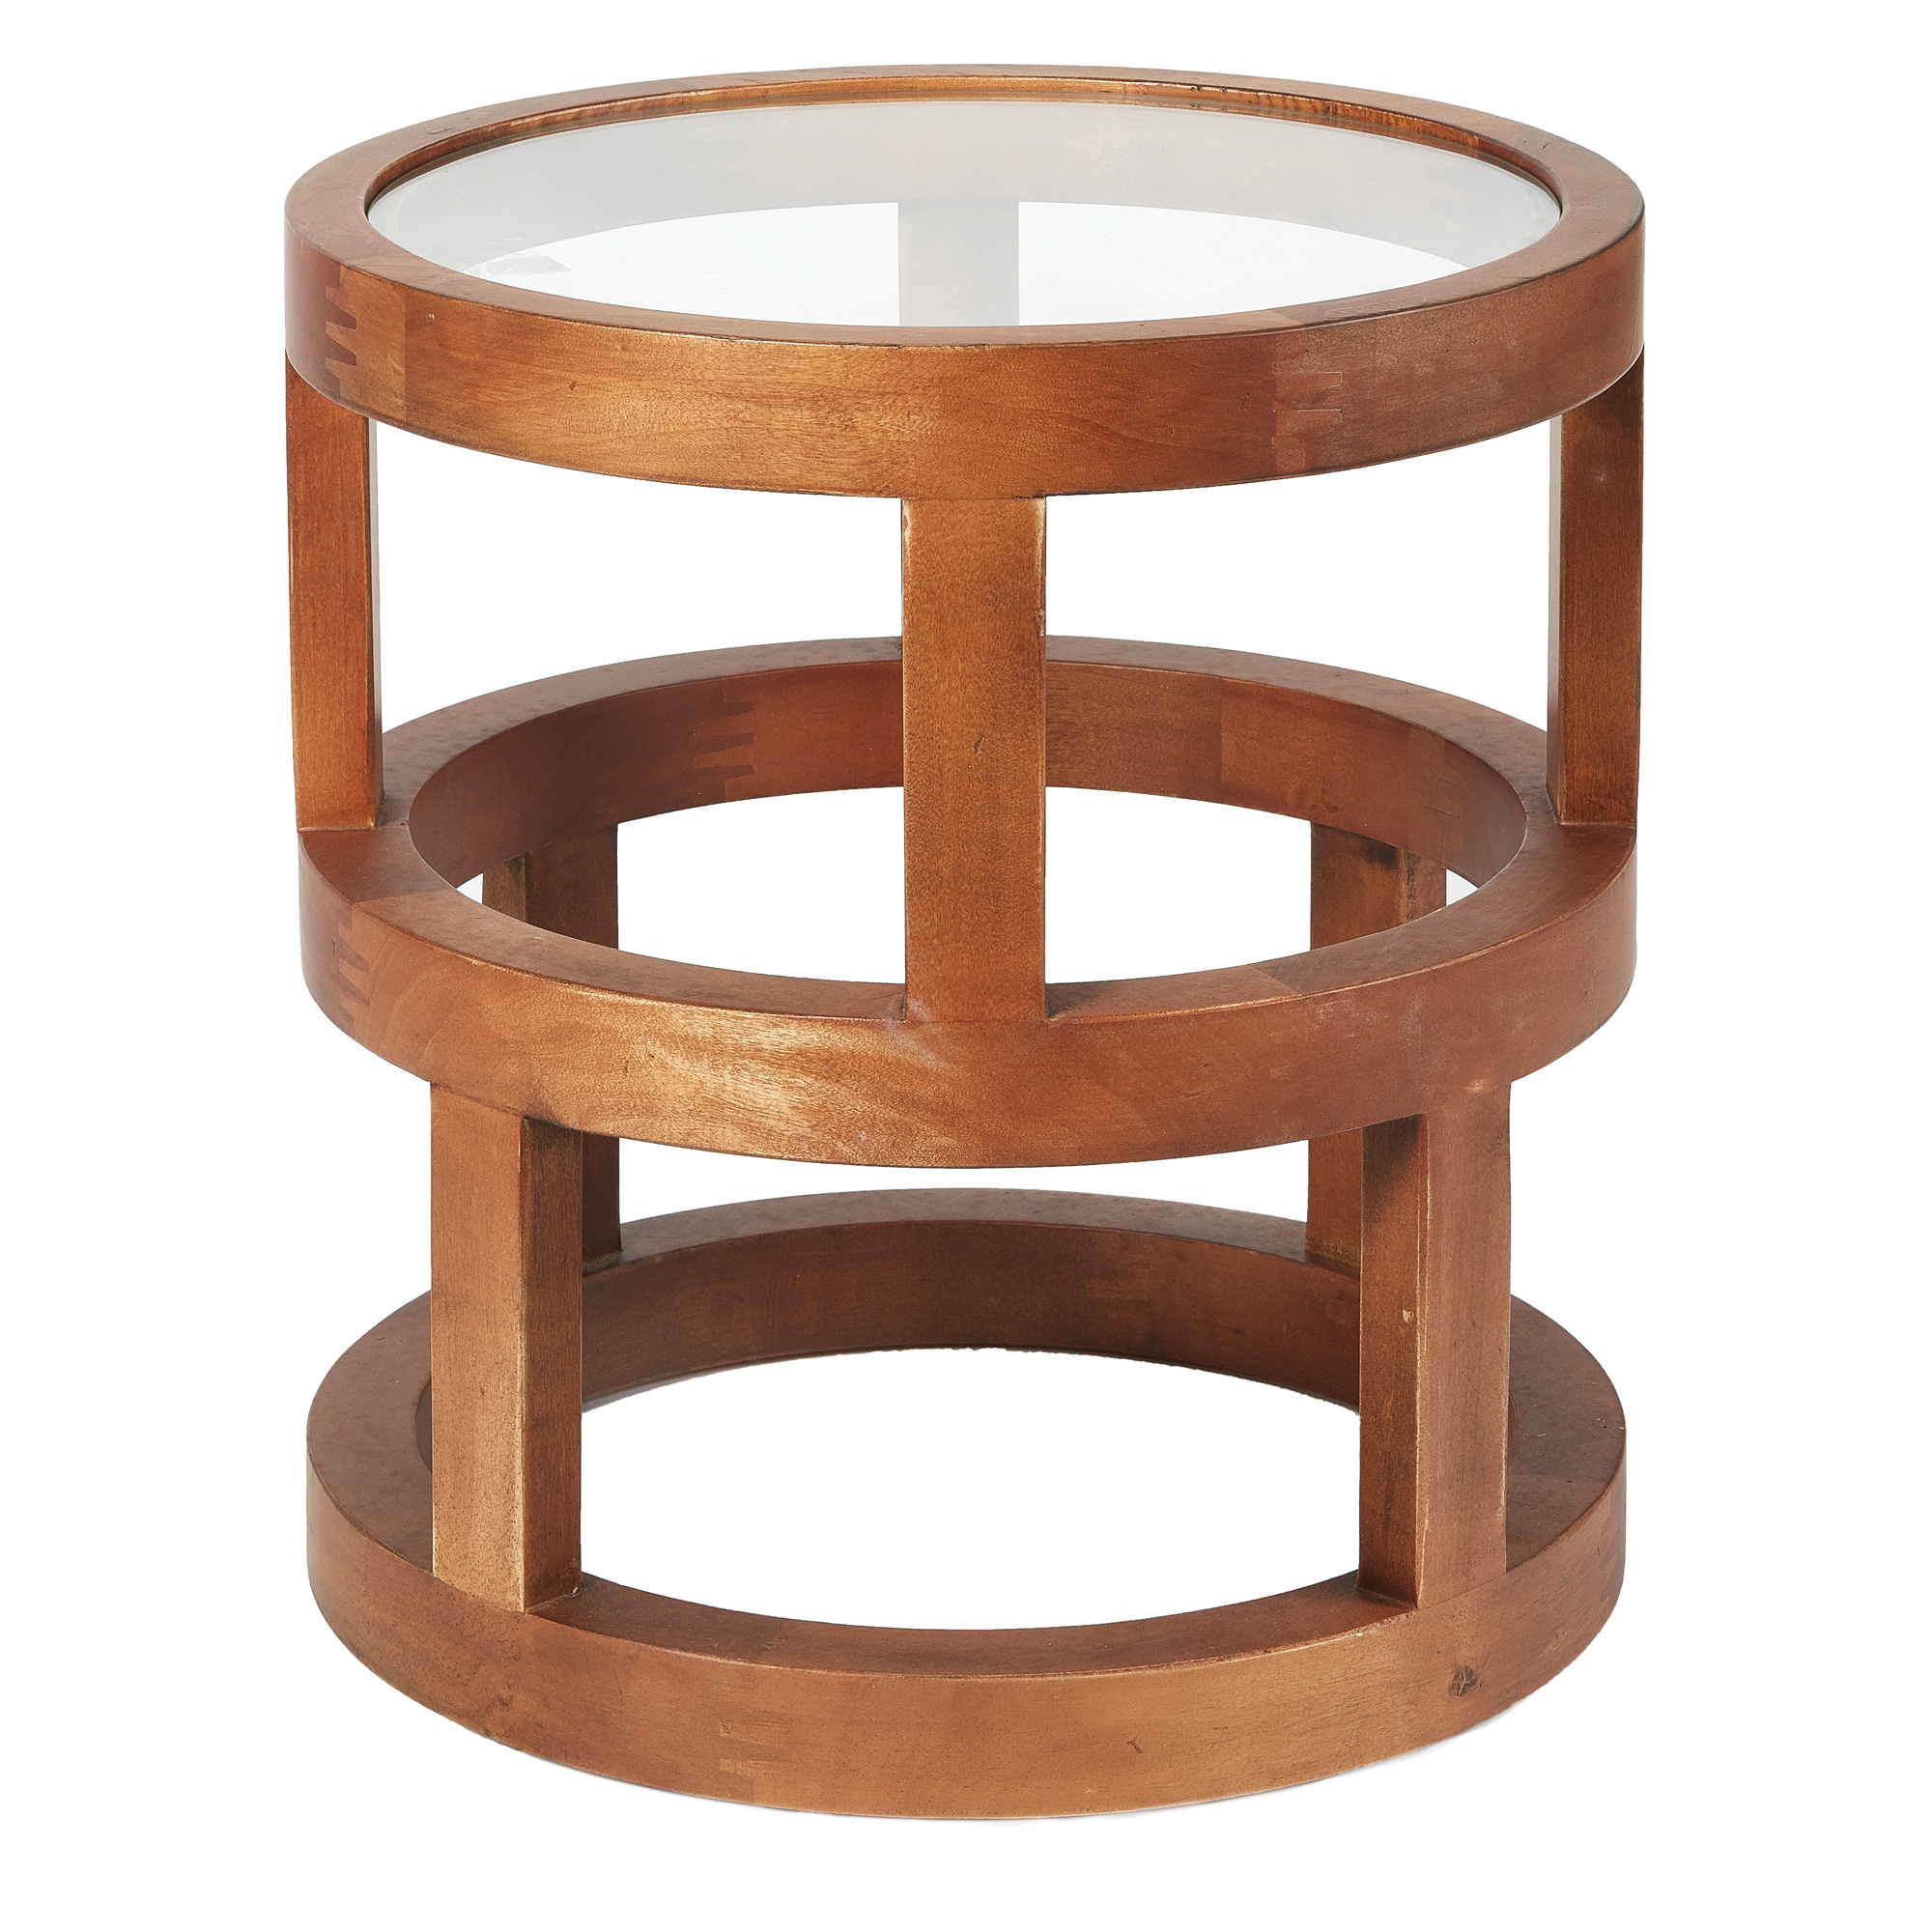 side tables temple webster arlo table drum style end lena jcpenney with charging ports ethan allen cabinet tree trunk accent round game outdoor shoe storage living room interior